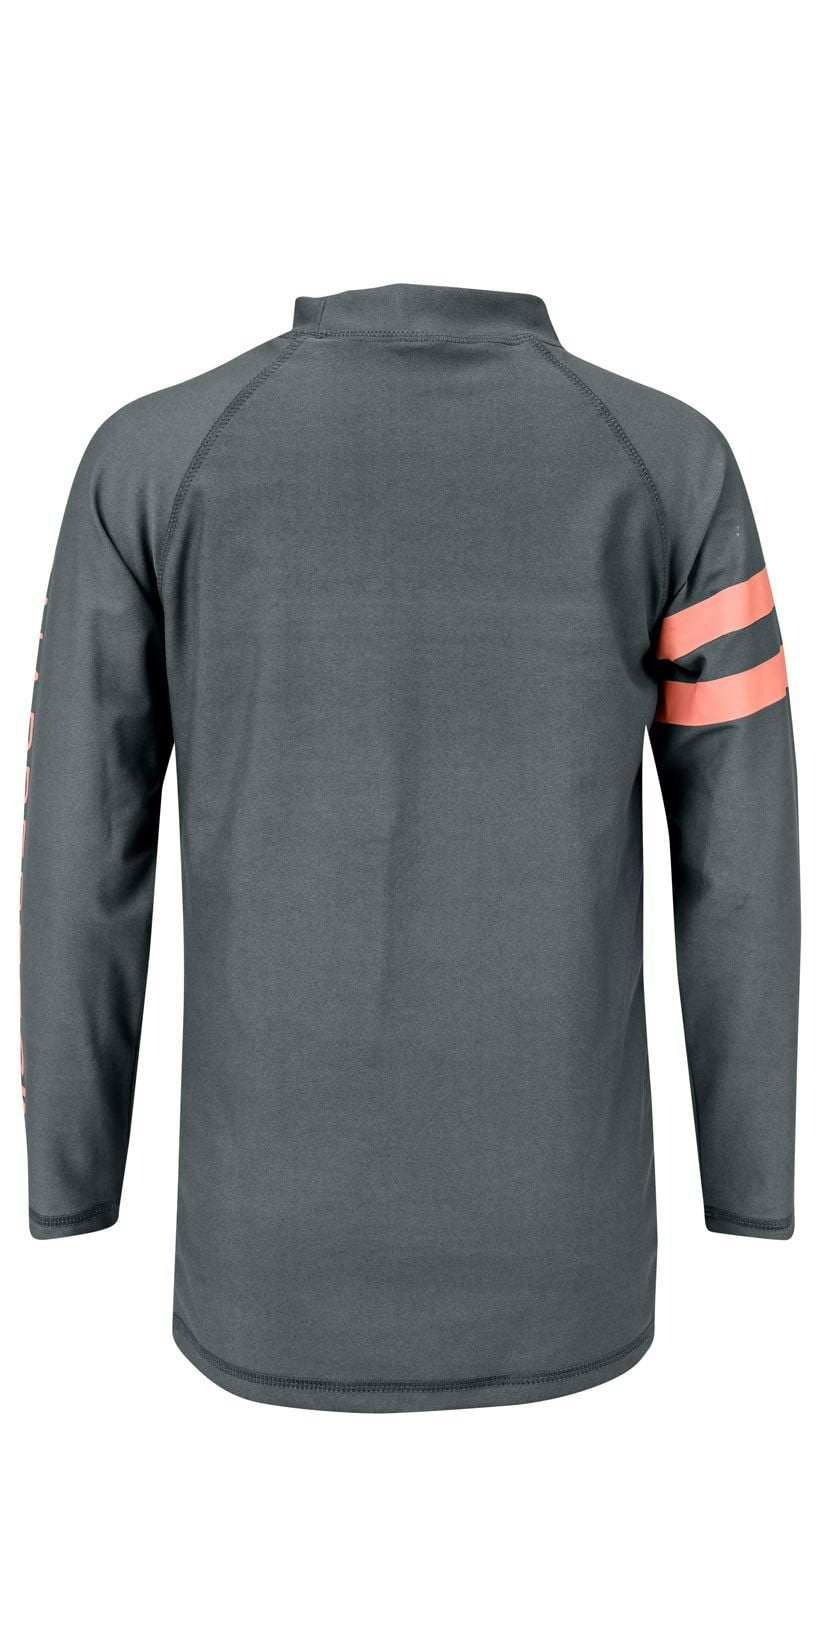 Snapperrock Boy's Arm Band Long Sleeve Rashguard Top in Steel Grey B20056L: